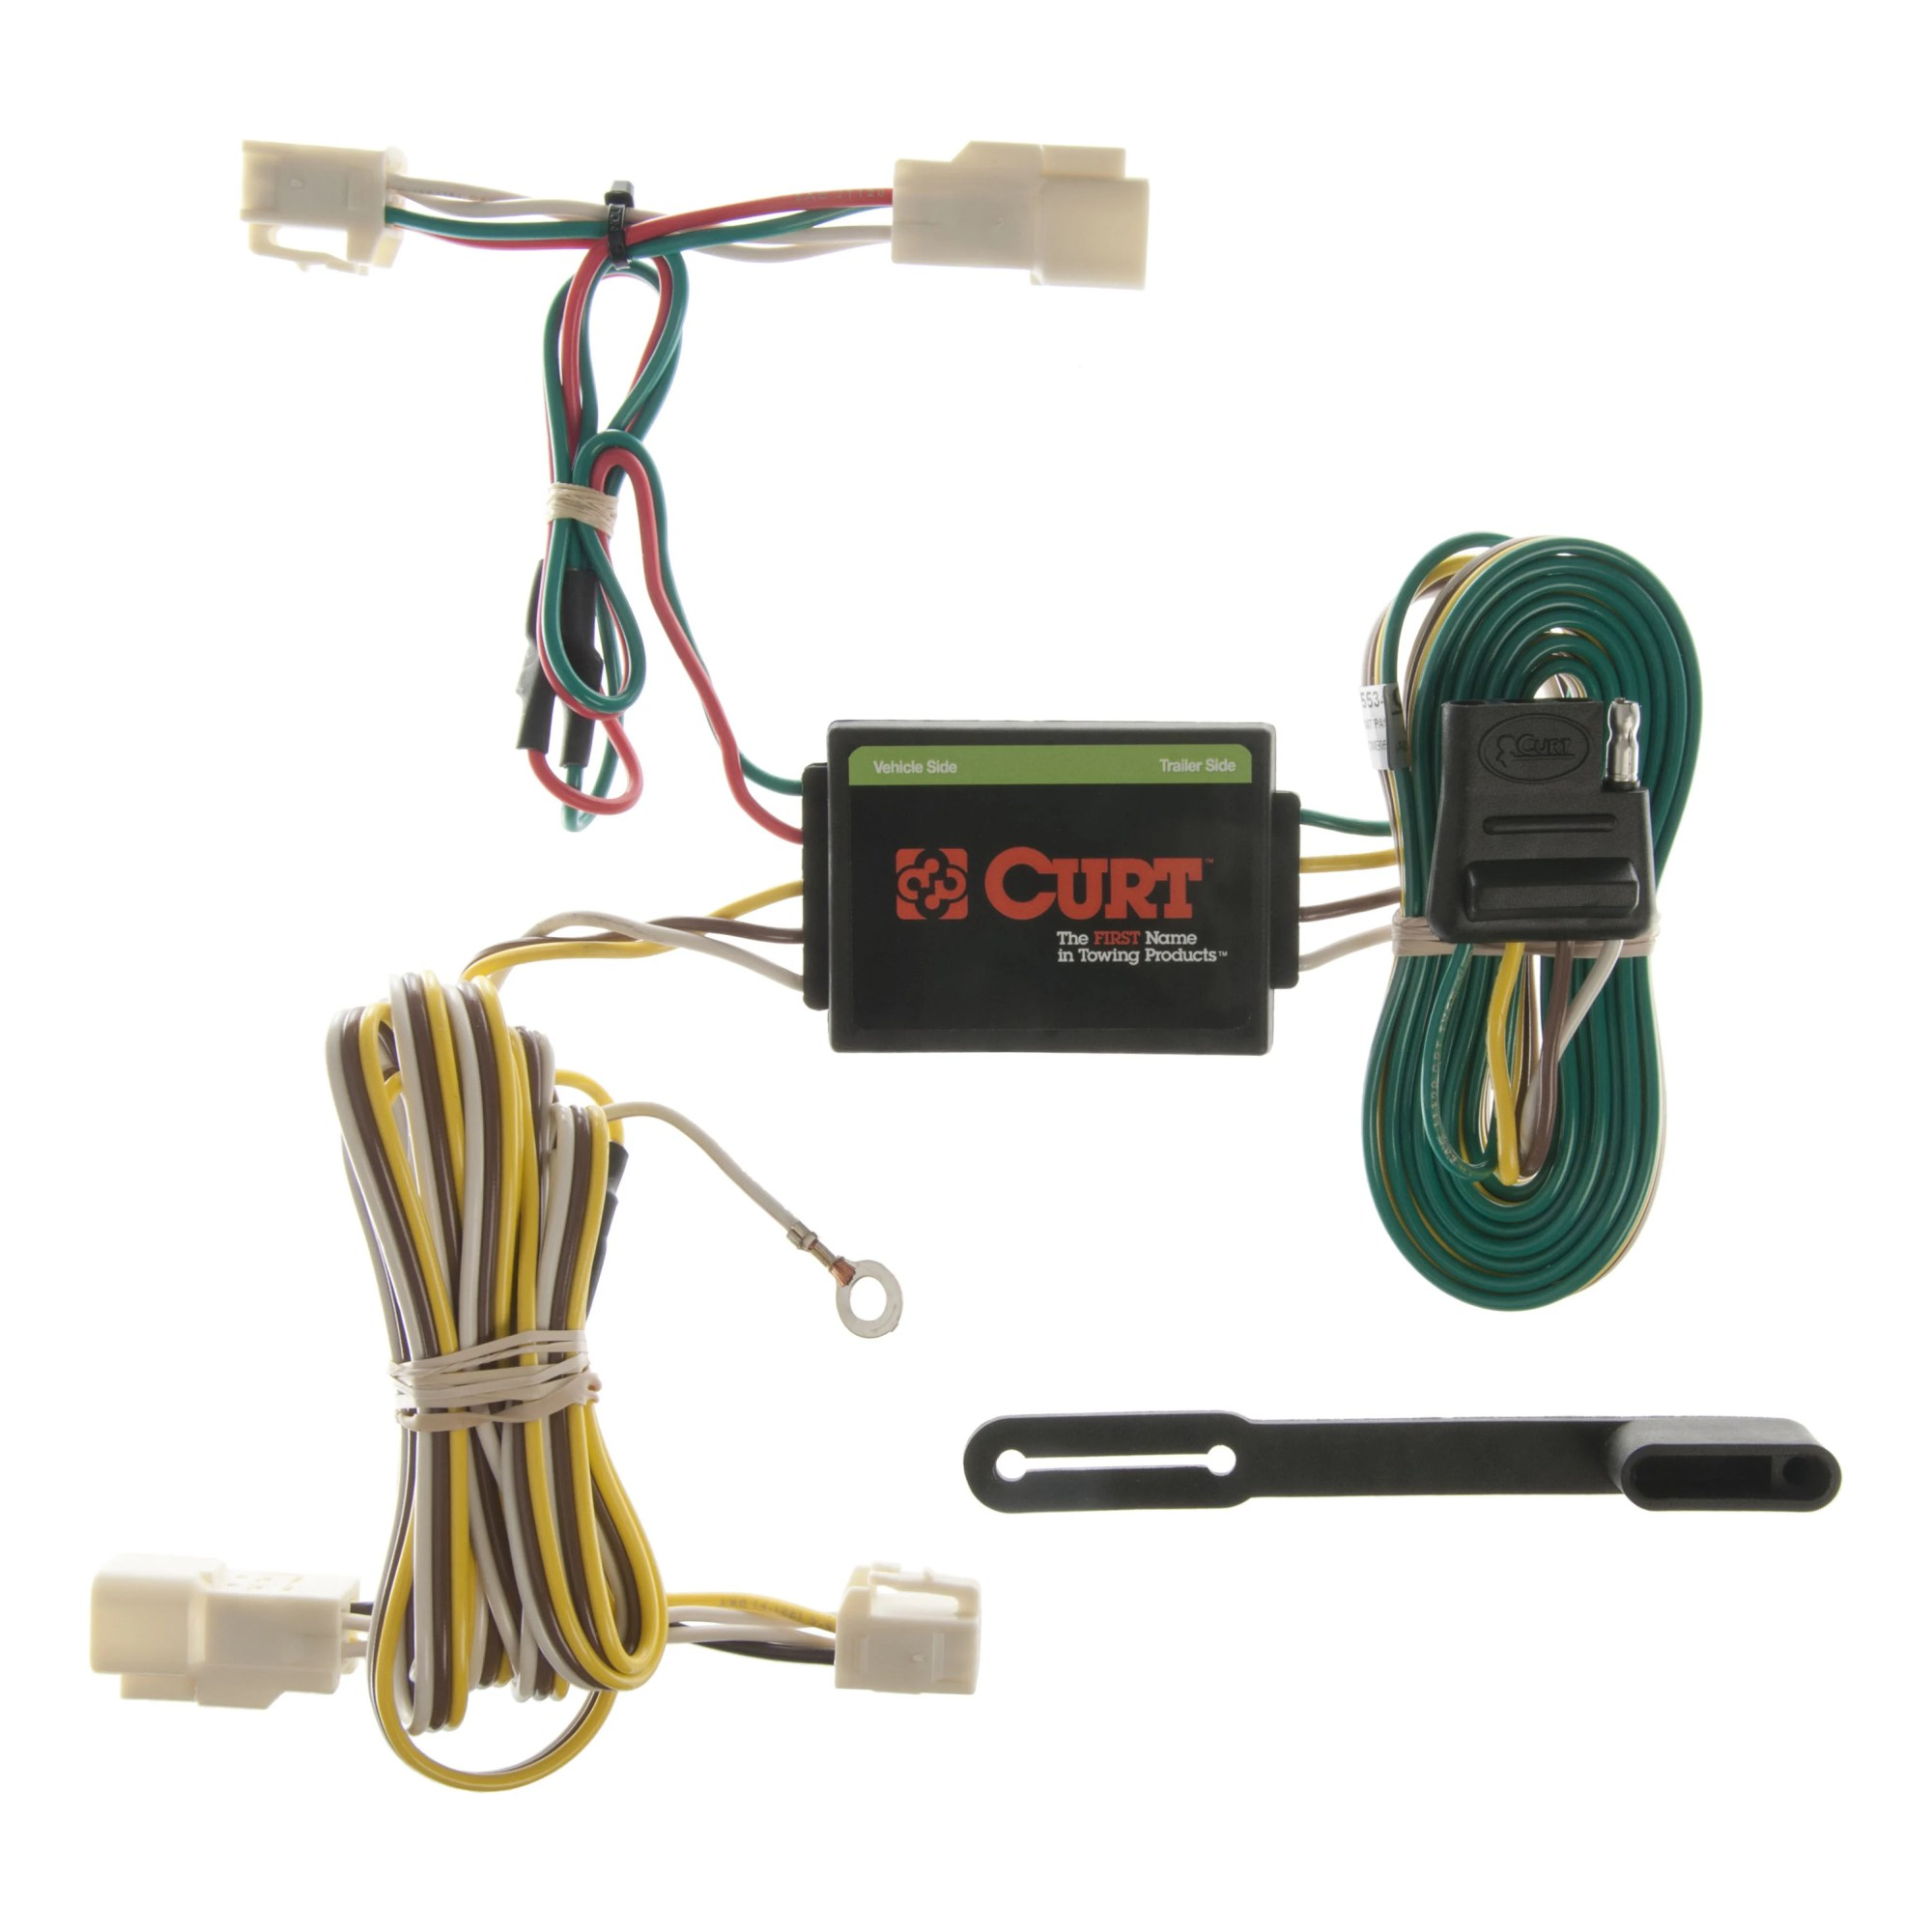 hight resolution of curt custom vehicle to trailer wiring harness 55341 for 1996 2002 toyota 4runner